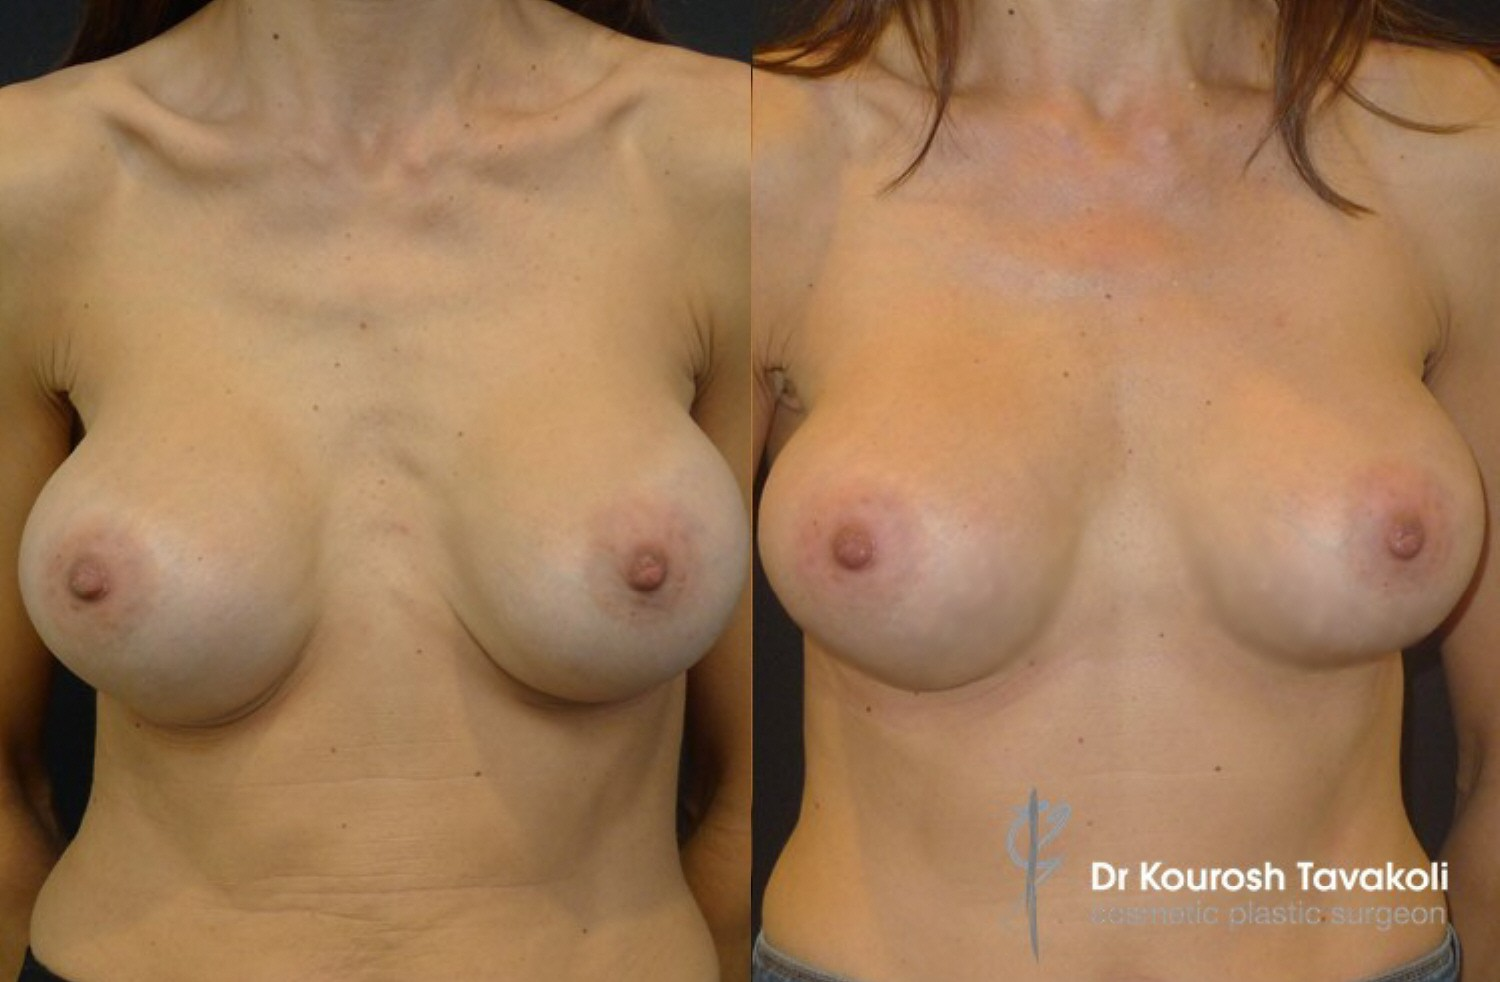 Fat grafting combined with breast implants before and after photo